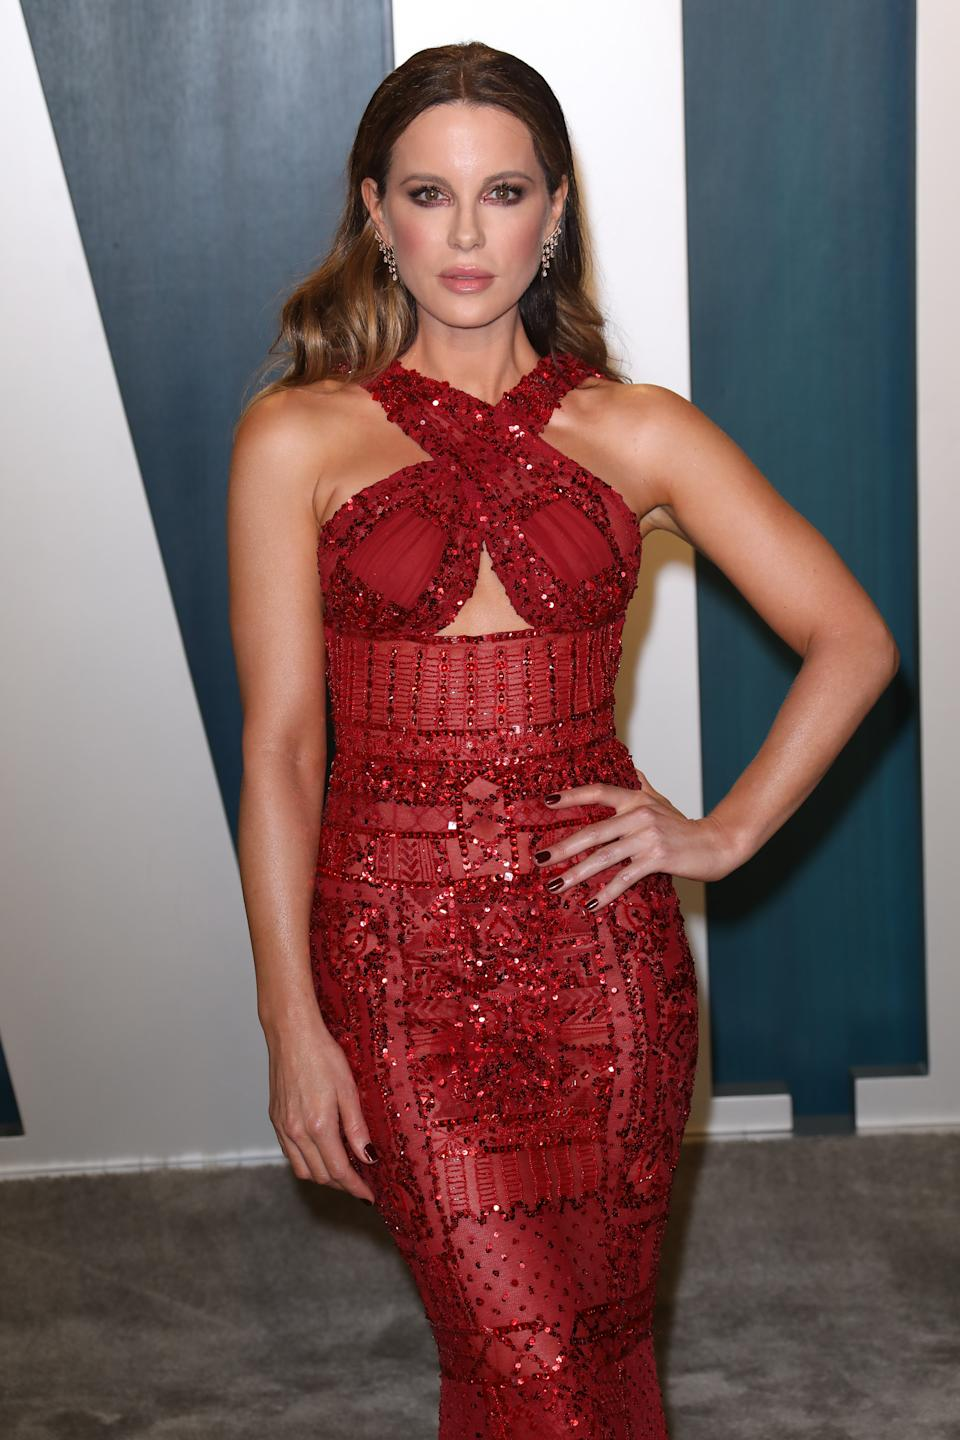 """Beckinsale went forward with her experience of being """"bullied"""" by Harvey Weinstein. (Photo by Toni Anne Barson/WireImage)"""